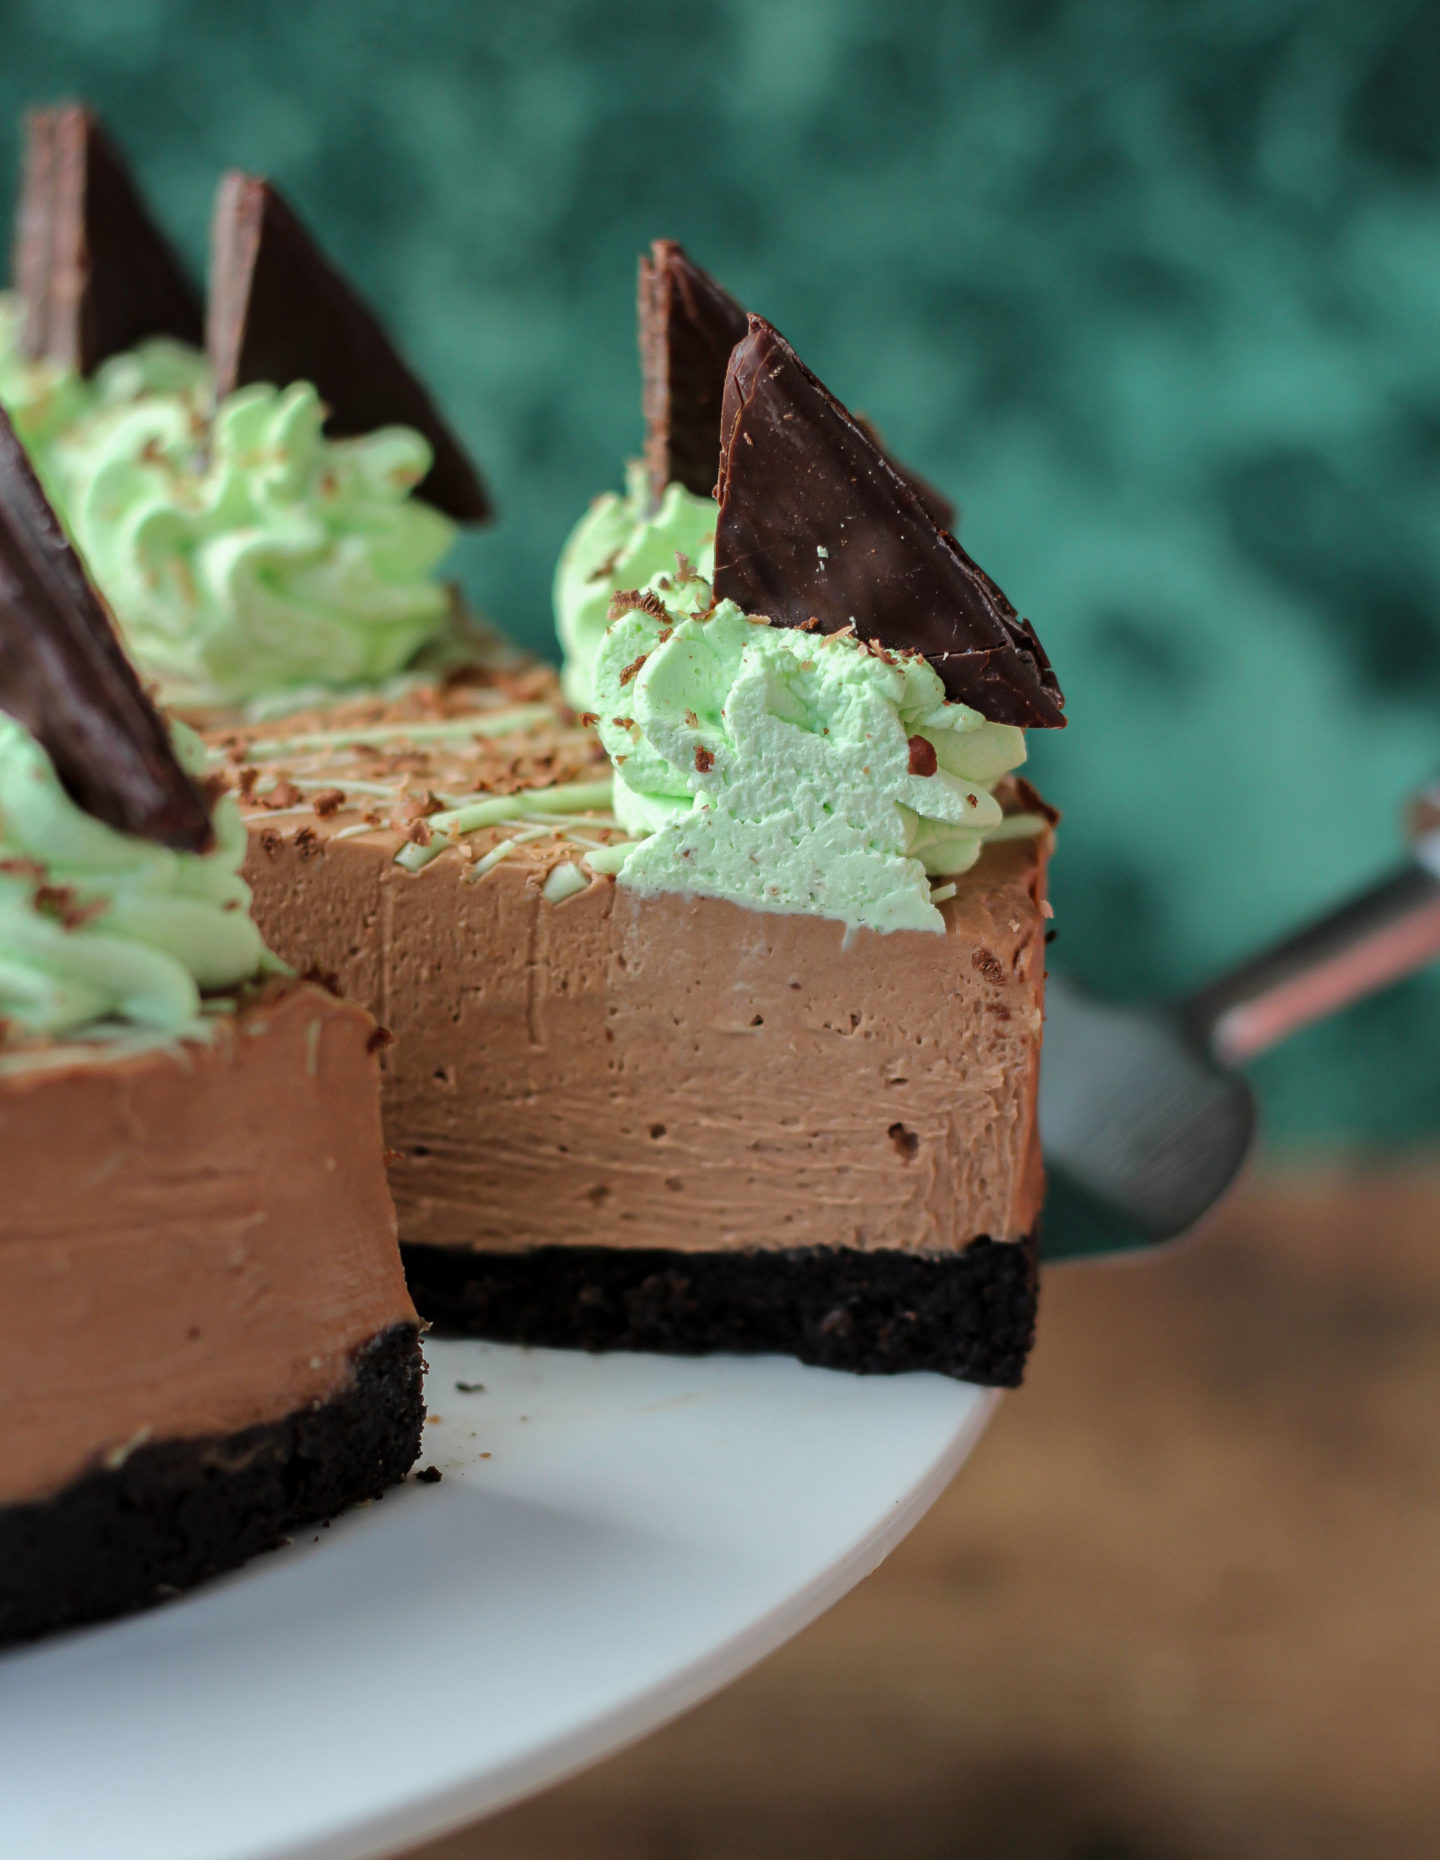 Close up of slice of no-bake mint chocolate cheesecake being removed from serving plate